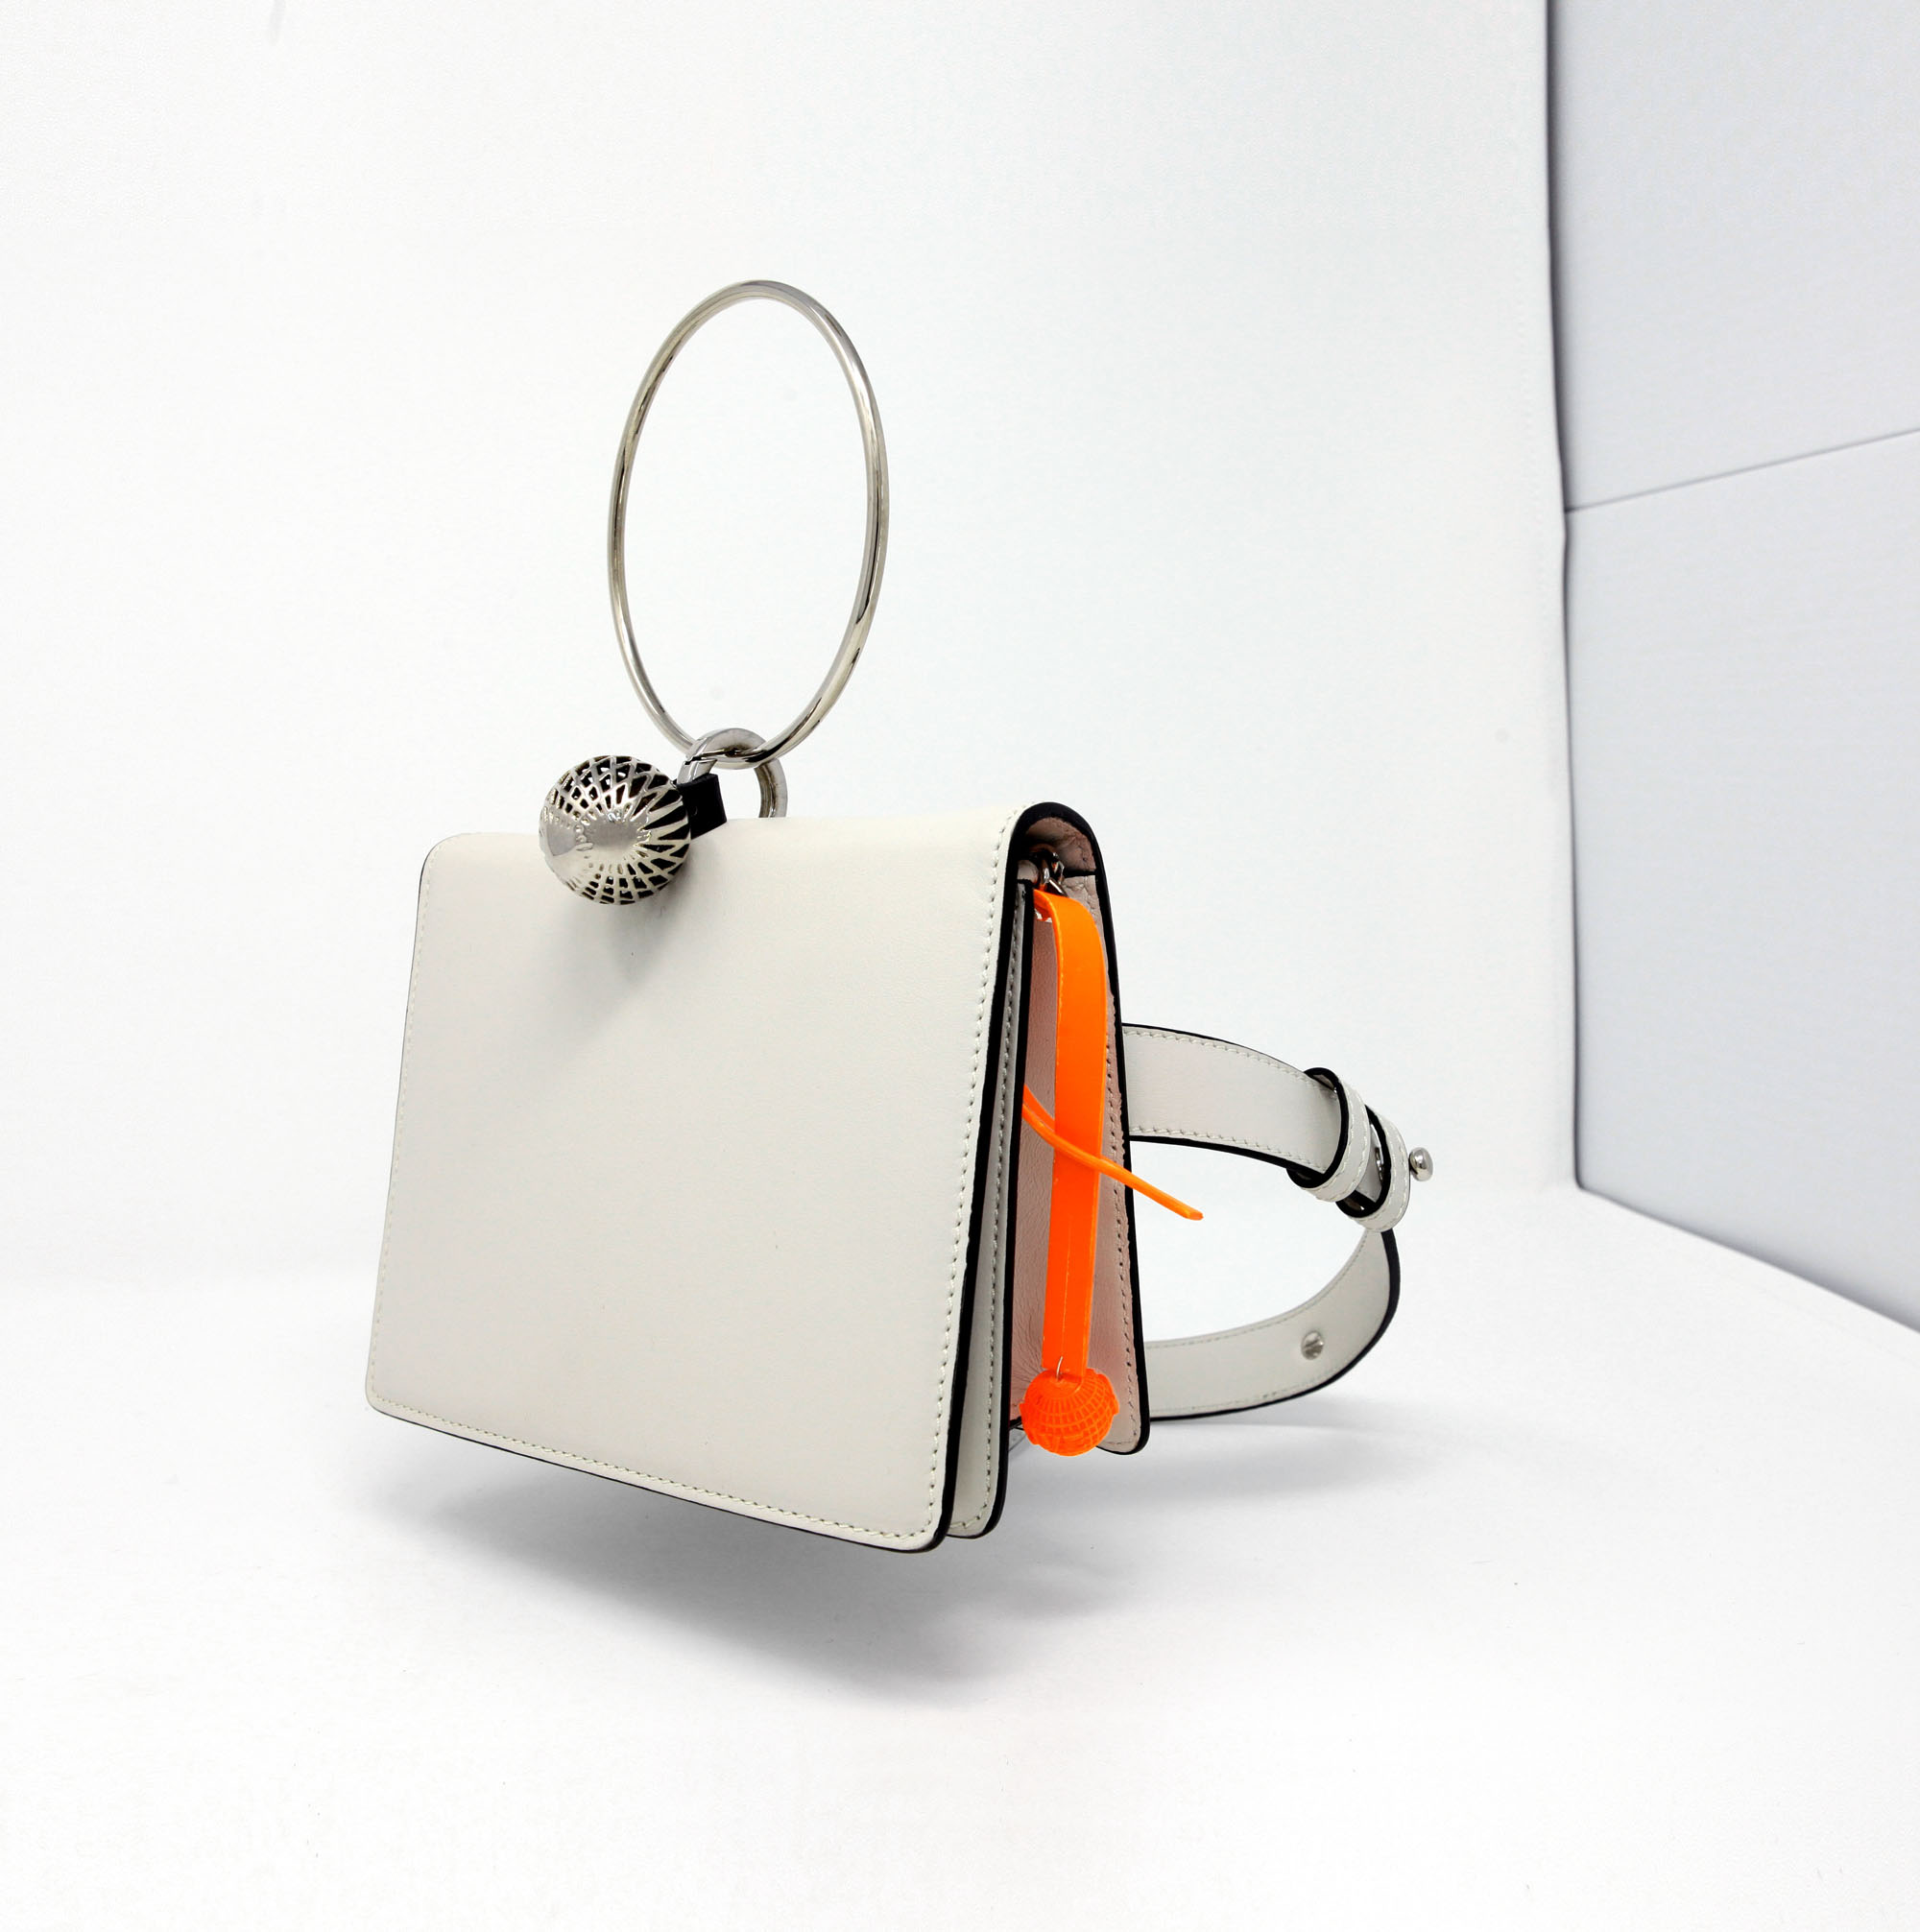 Belt Bags 10.1 - Maissa by Giulia Ber Tacchini Italian Custom Jewels and Luxury